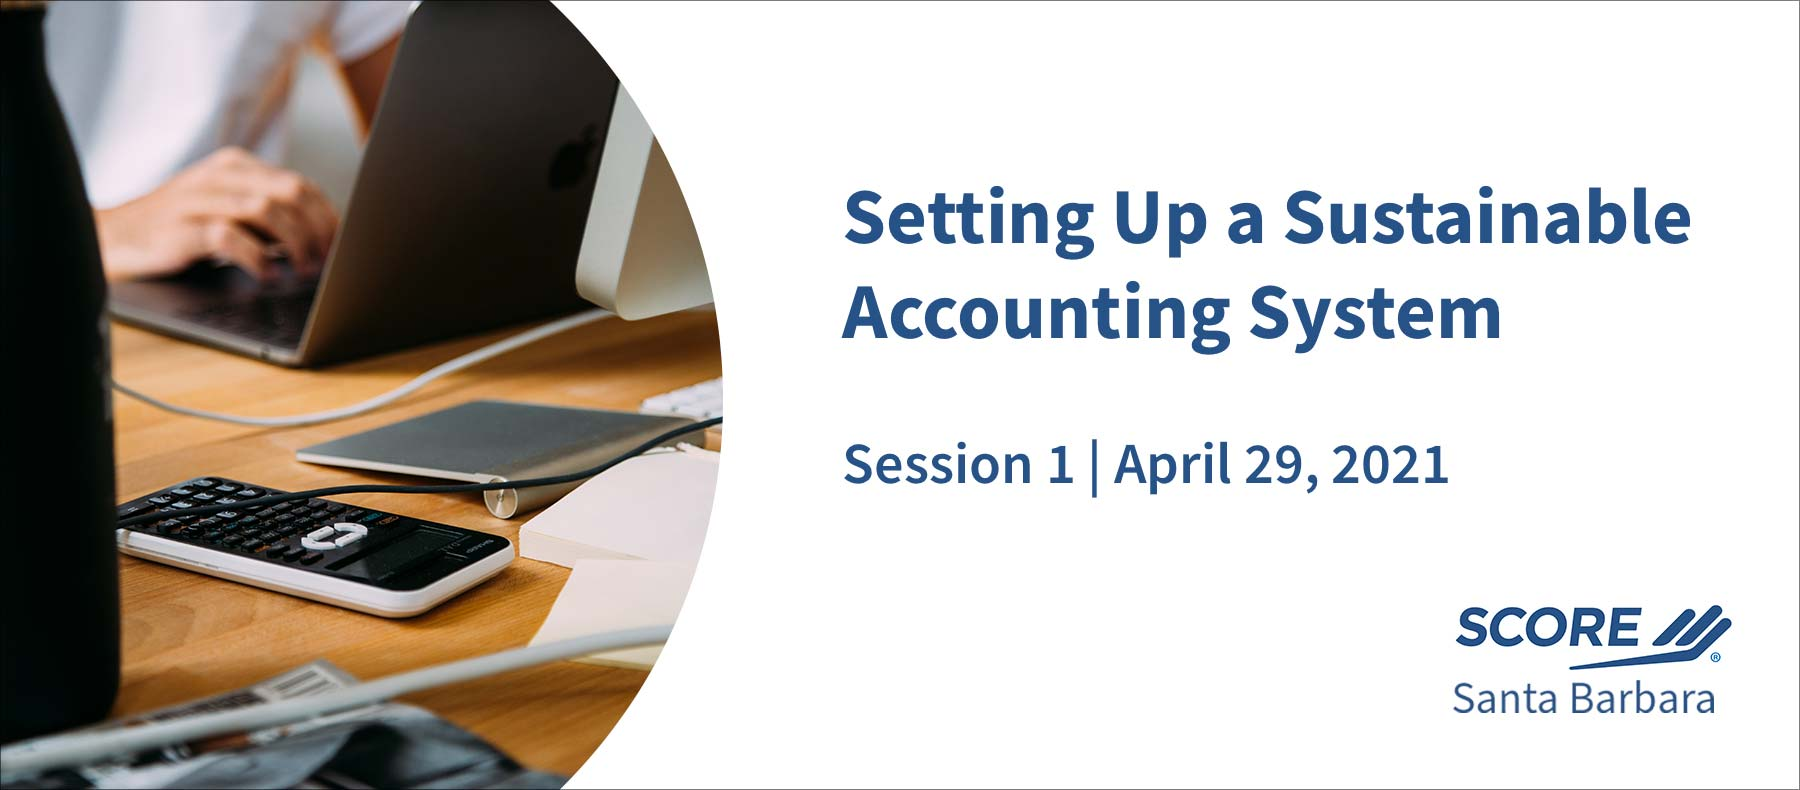 SCORE setting up accounting system session 1